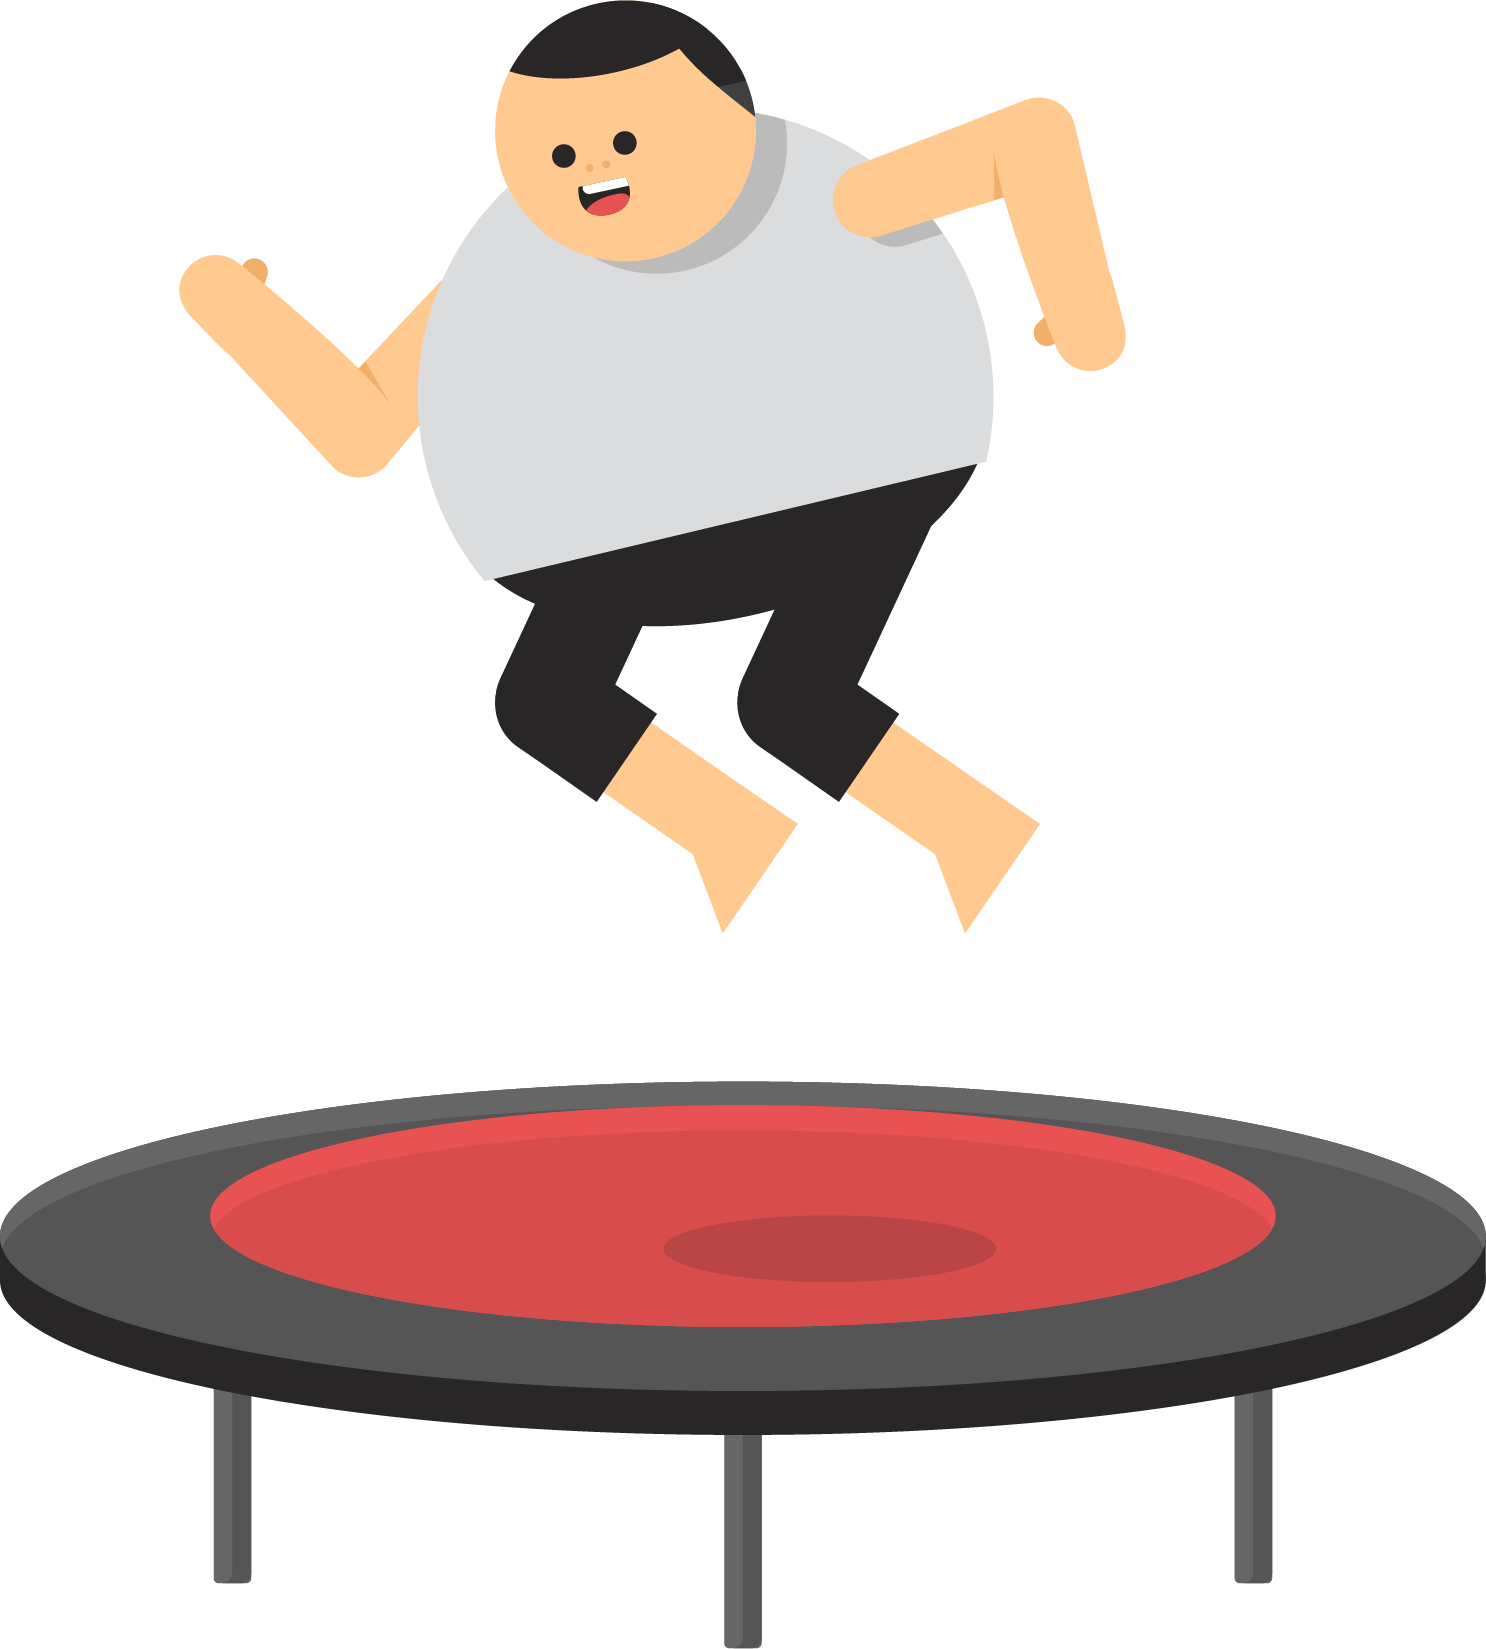 clip free library Kids jumping on trampoline clipart. Icon fat playing transprent